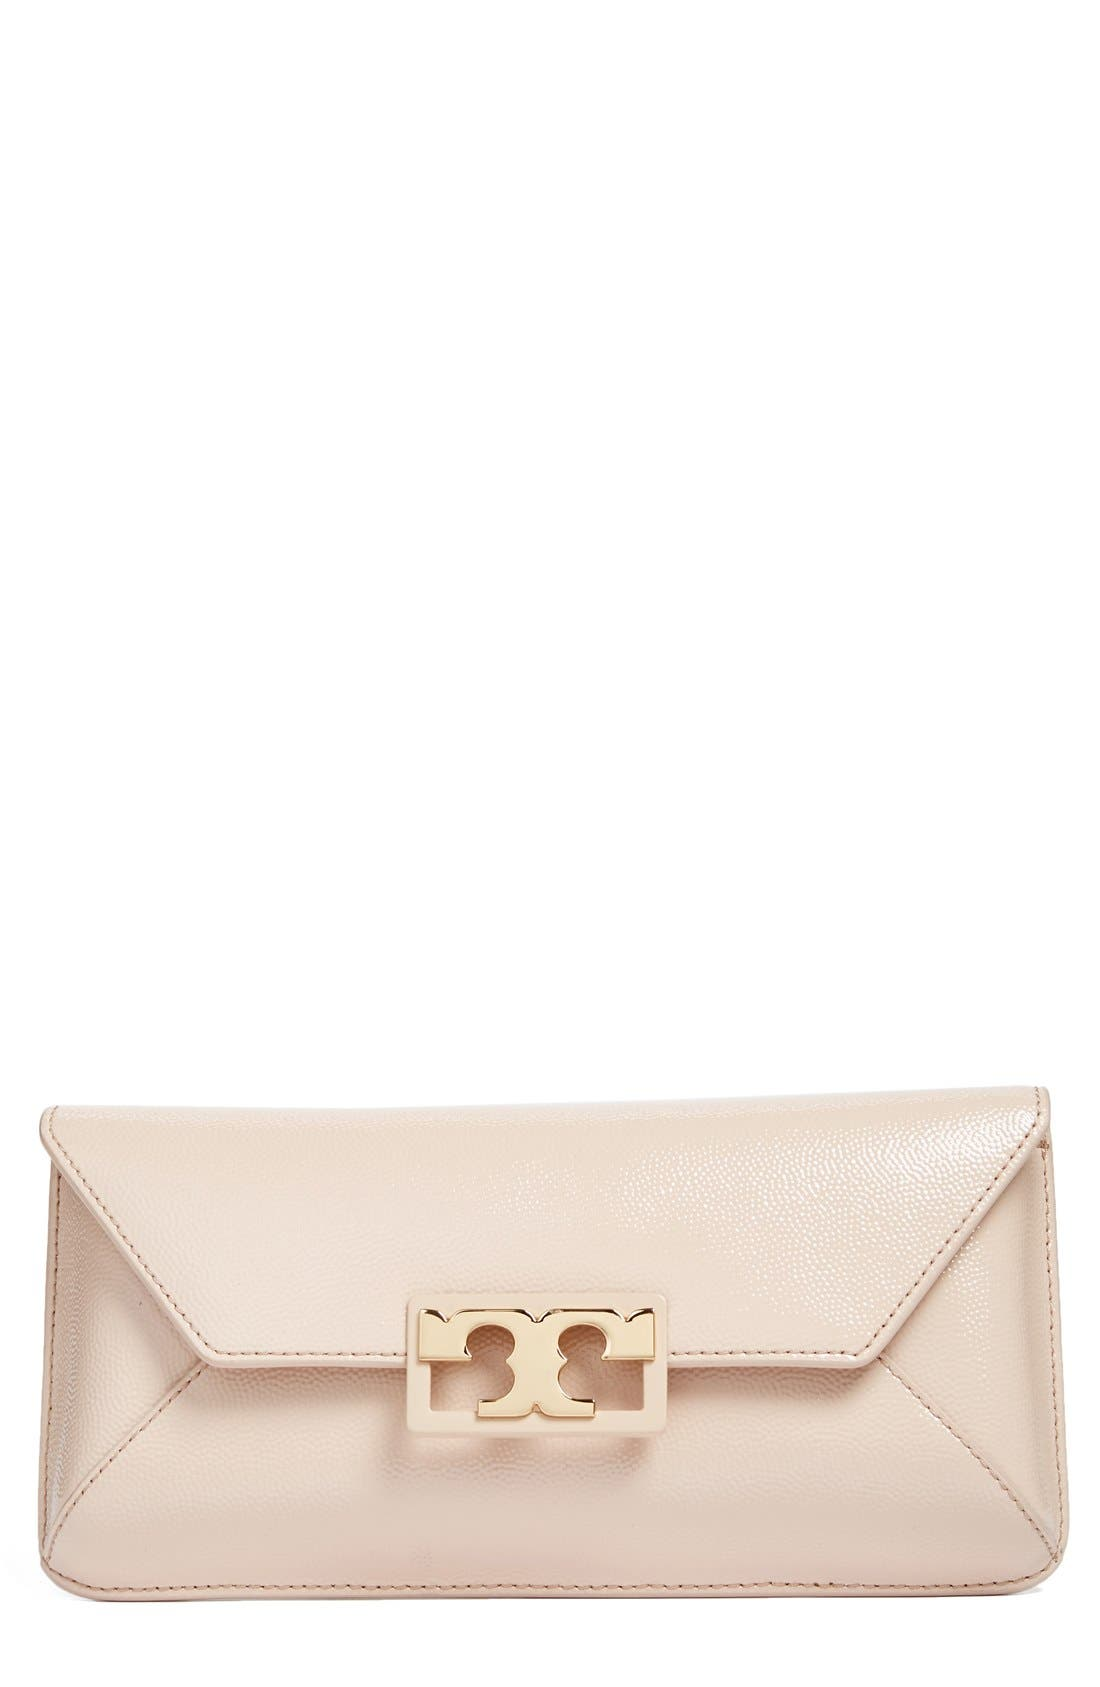 Tory Burch Gigi Caviar Leather Clutch